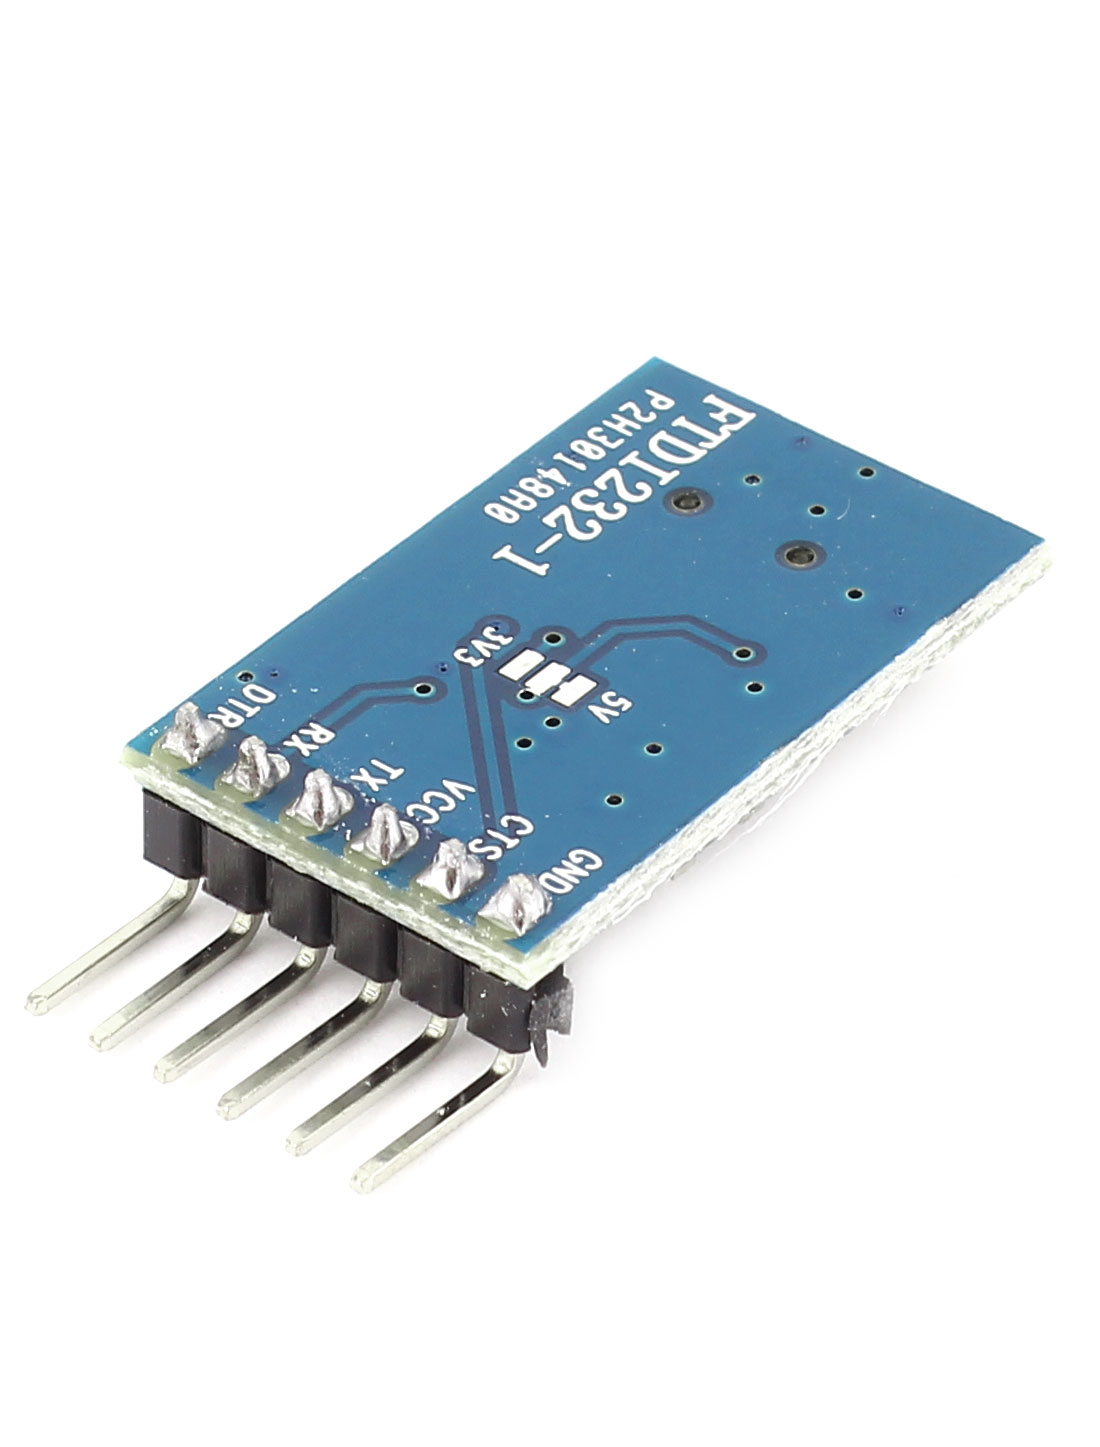 Unique Bargains Ft232rl Usb To Rs232 Ttl Serial Adapter Max232 Converter By Module 33v 5v For Arduino